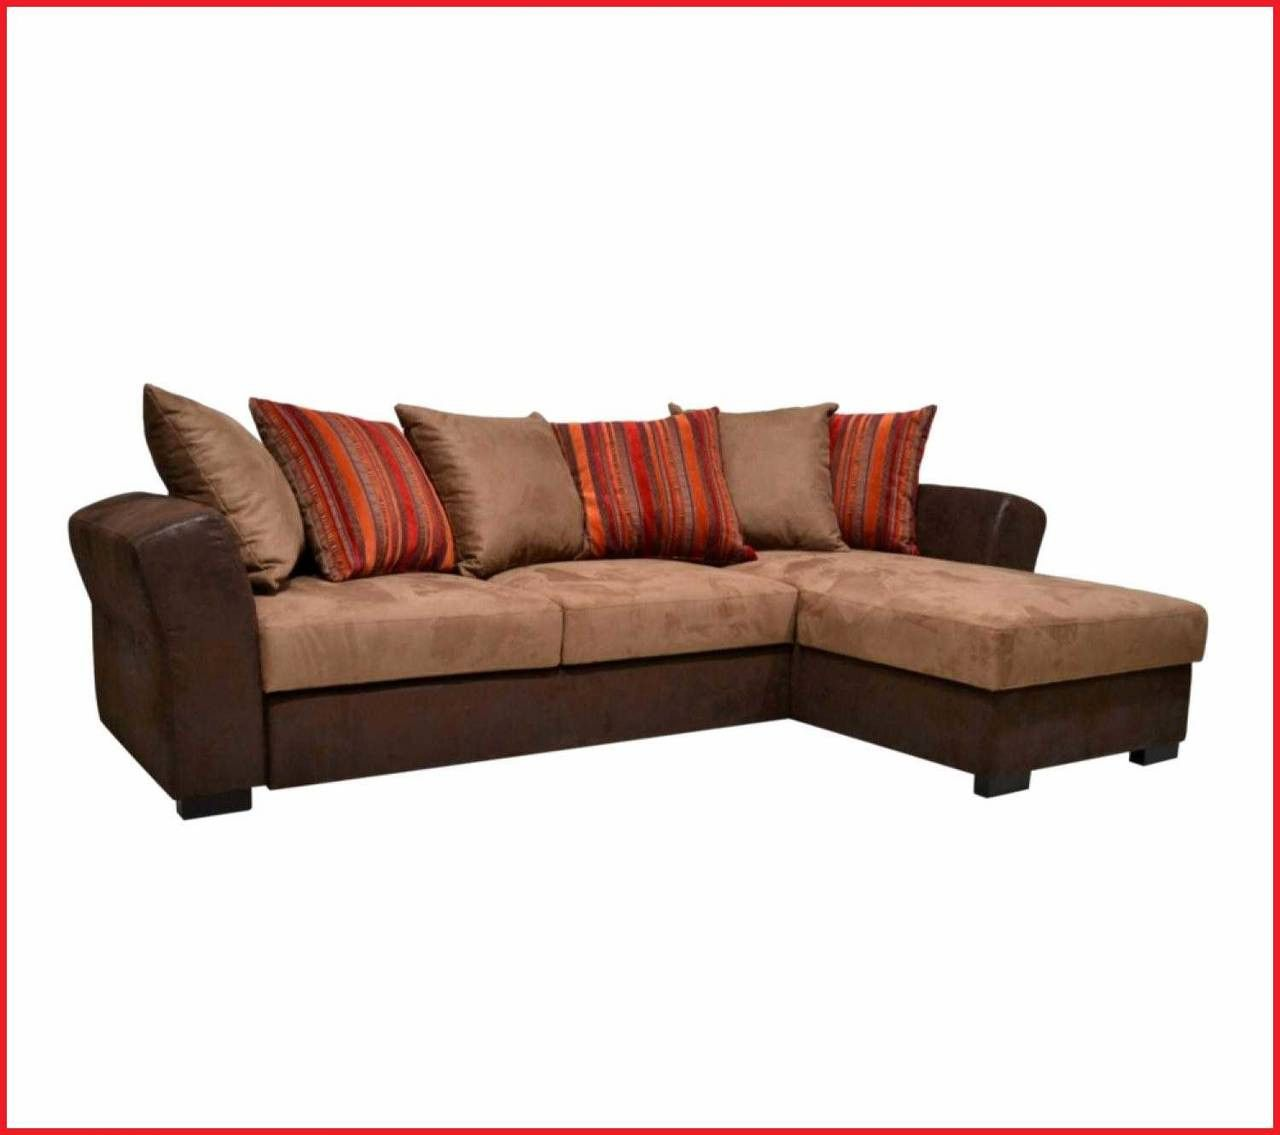 Awesome Canape Convertible Poltronesofa Prix Sectional Couch Home Decor Furniture